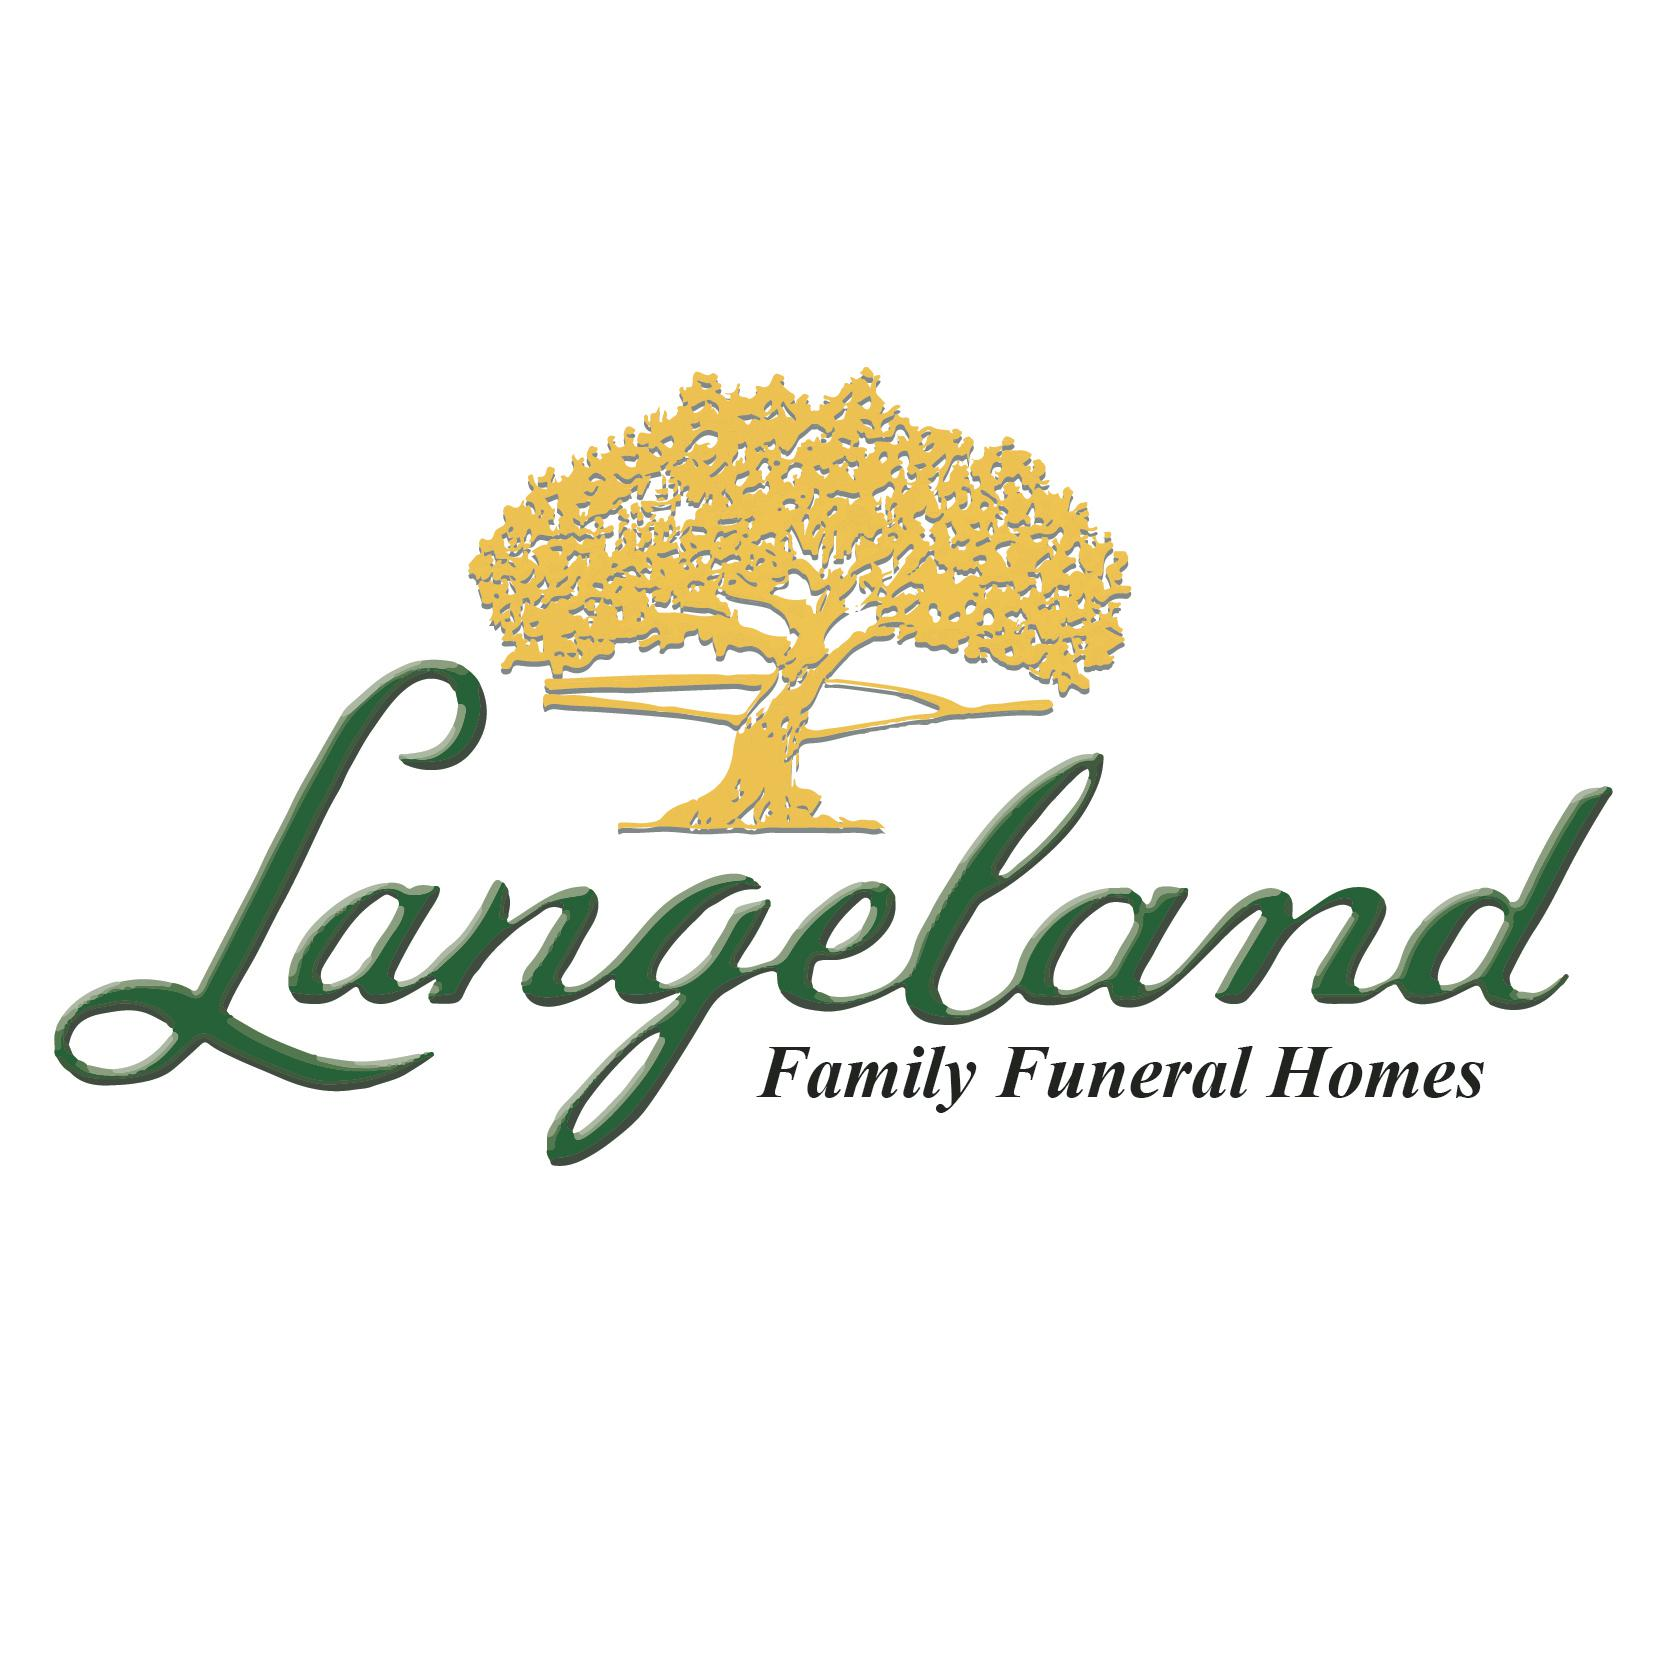 Langeland Family Funeral Homes Burial & Cremation Services image 0